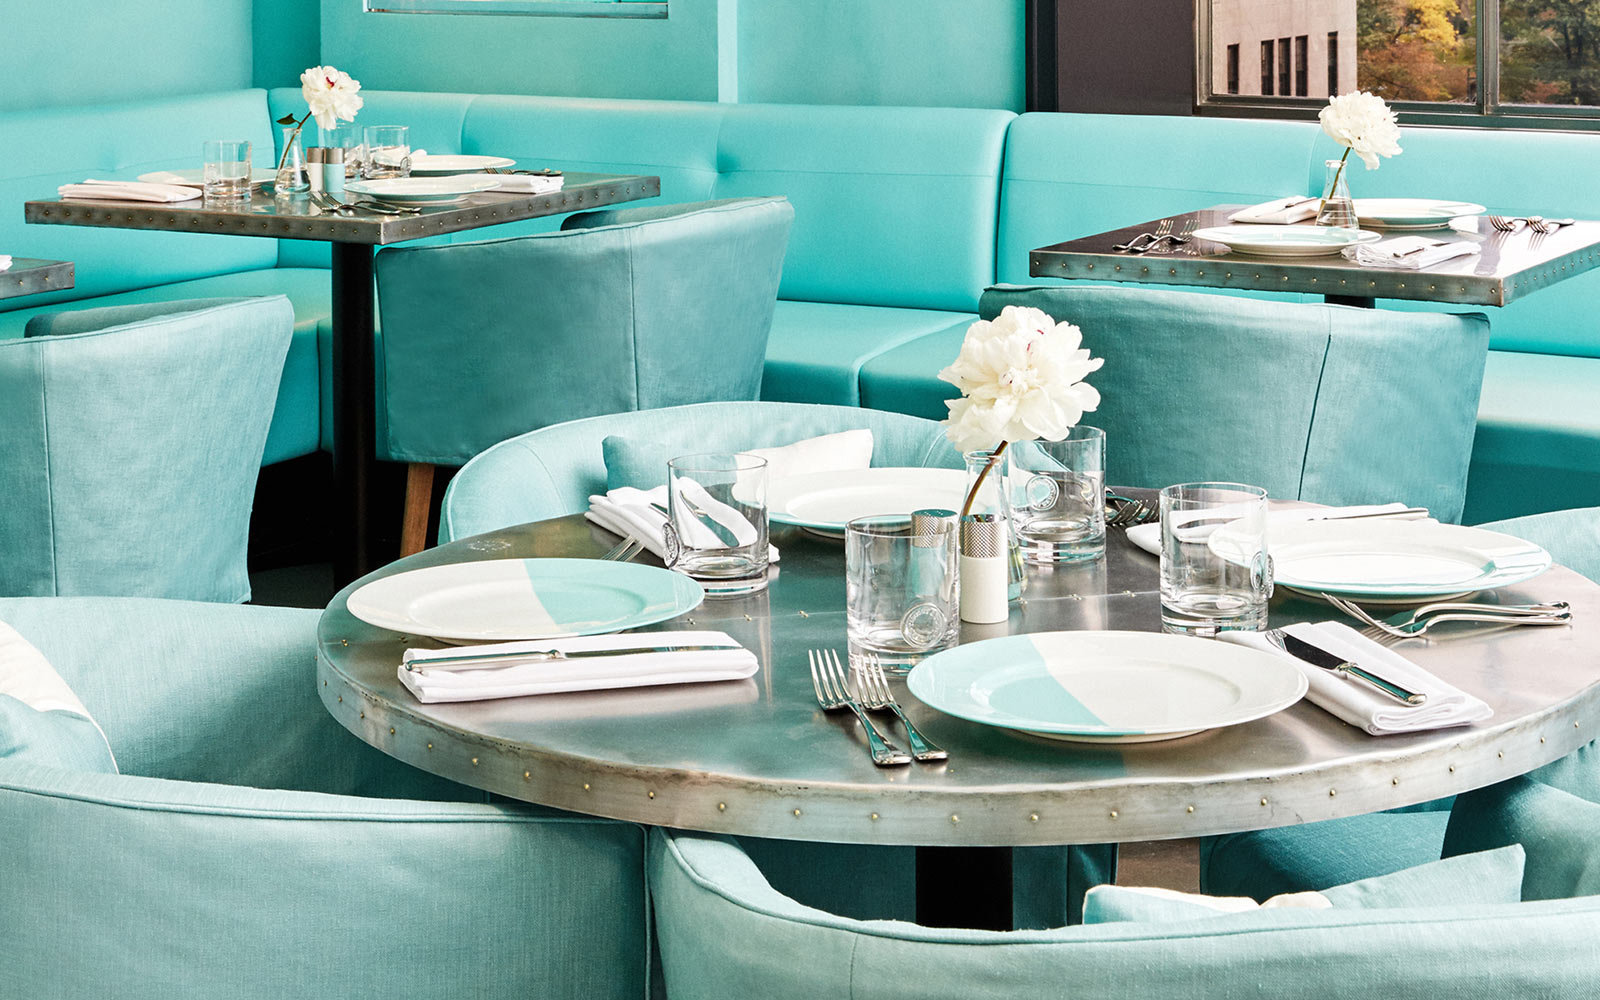 Have  Breakfast at Tiffany's  at the Blue Box Cafe